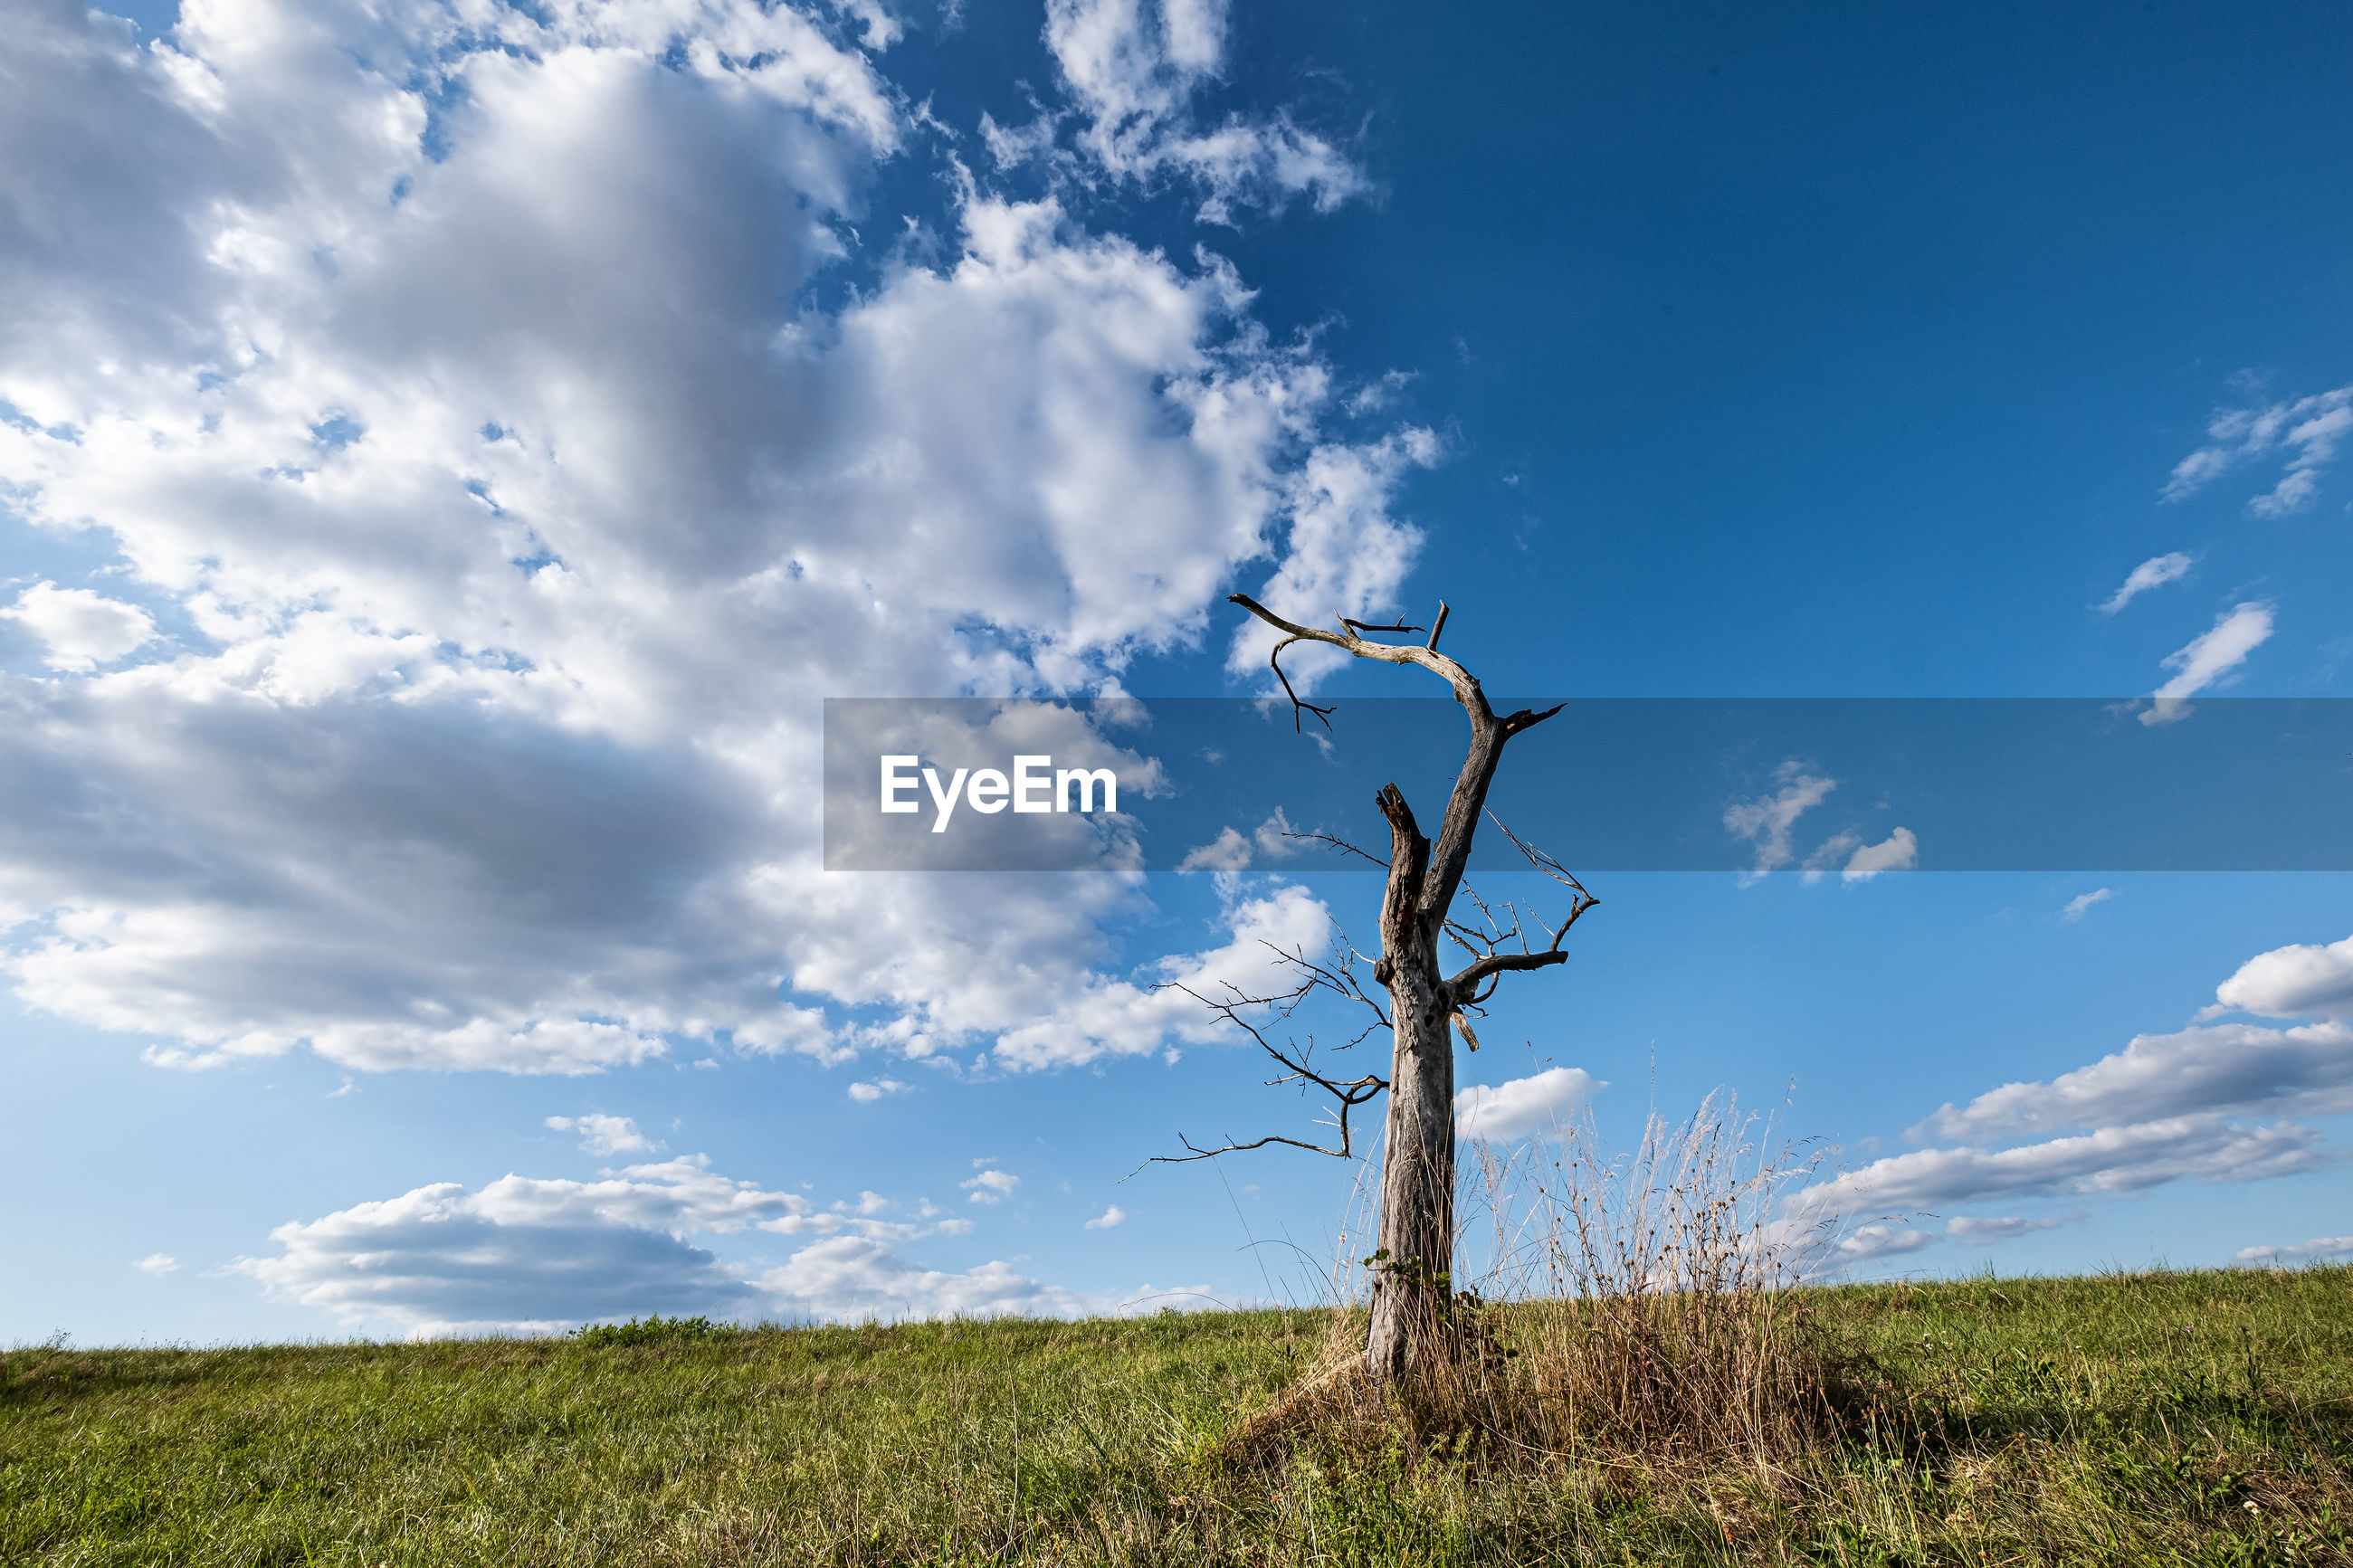 Dead tree on field against blue sky with scattered clouds